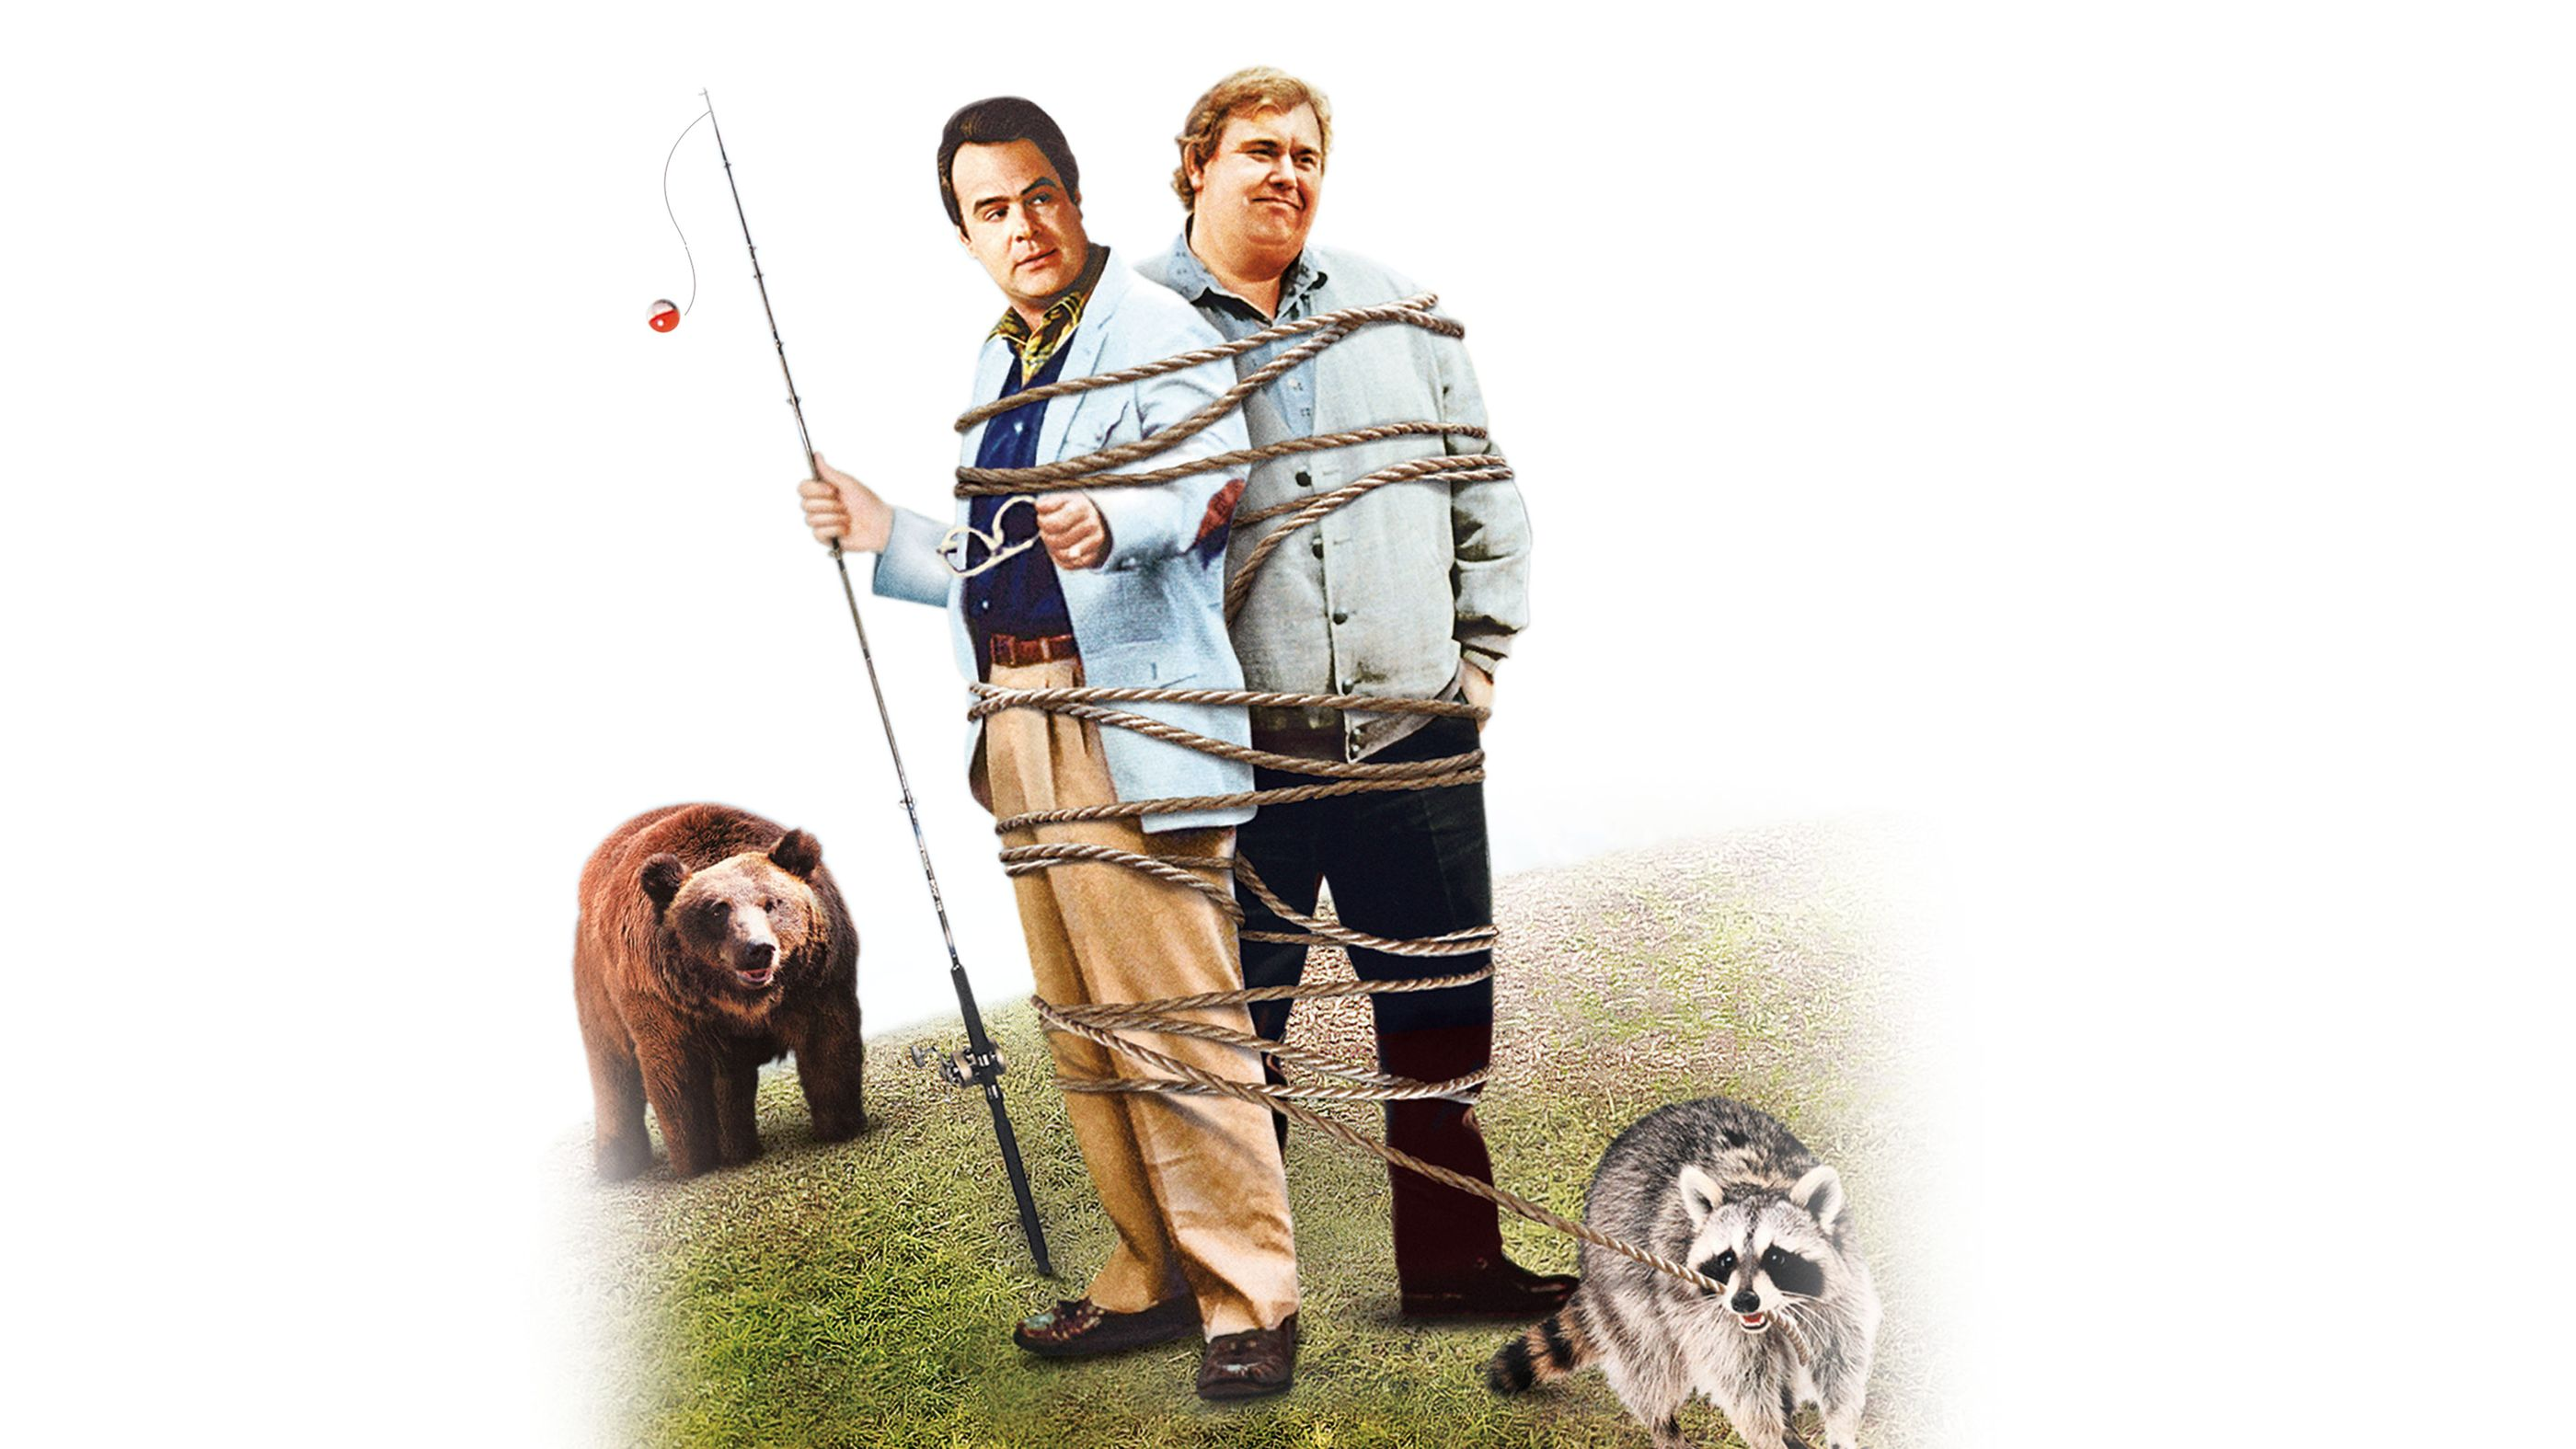 The Great Outdoors | Full Movie | Movies Anywhere